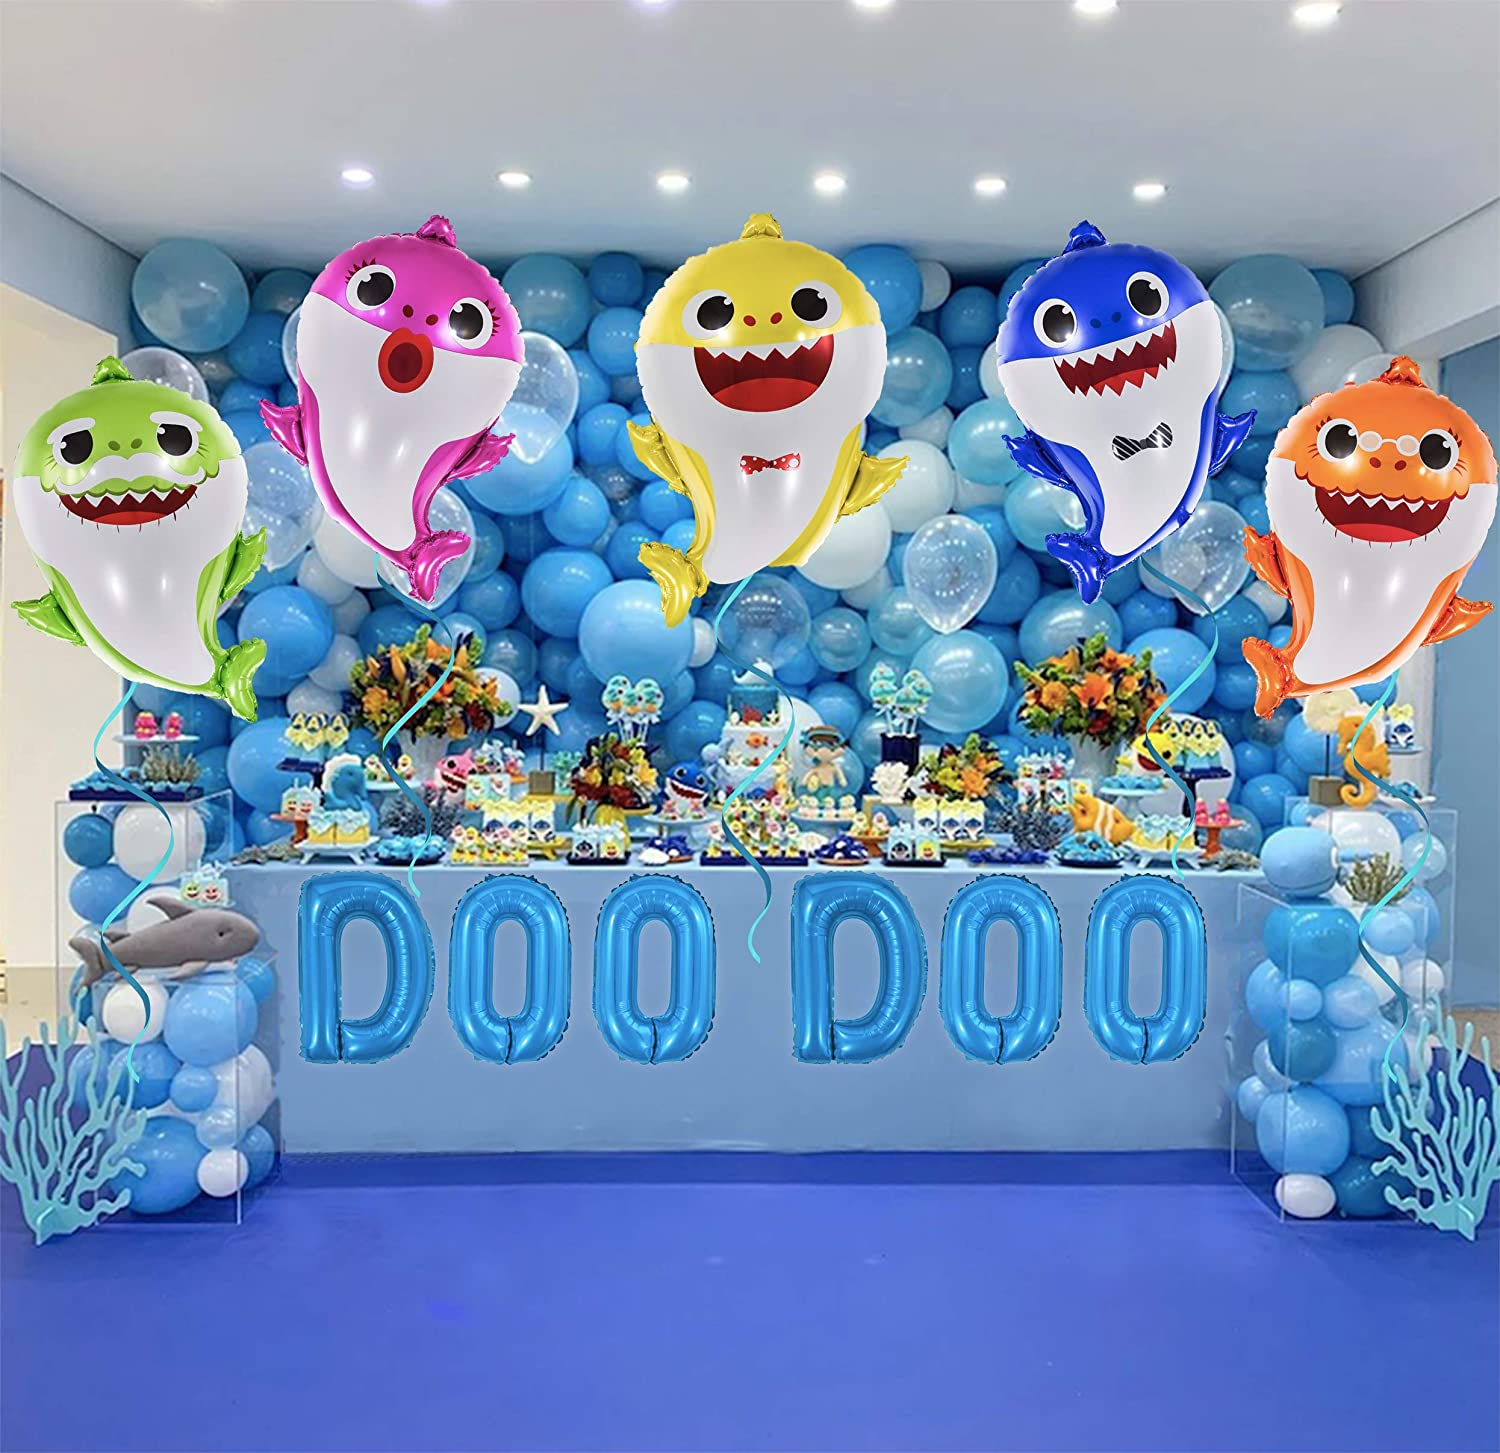 16 DOO DOO Letters OMG Party Factory Globos Para Fiestas 5pcs + Letters Huge 25 Baby Cute Shark Balloons All Family Members Included Doo Doo Birthday Party Decorations /& Supplies Helium Mylar Foil Balloons